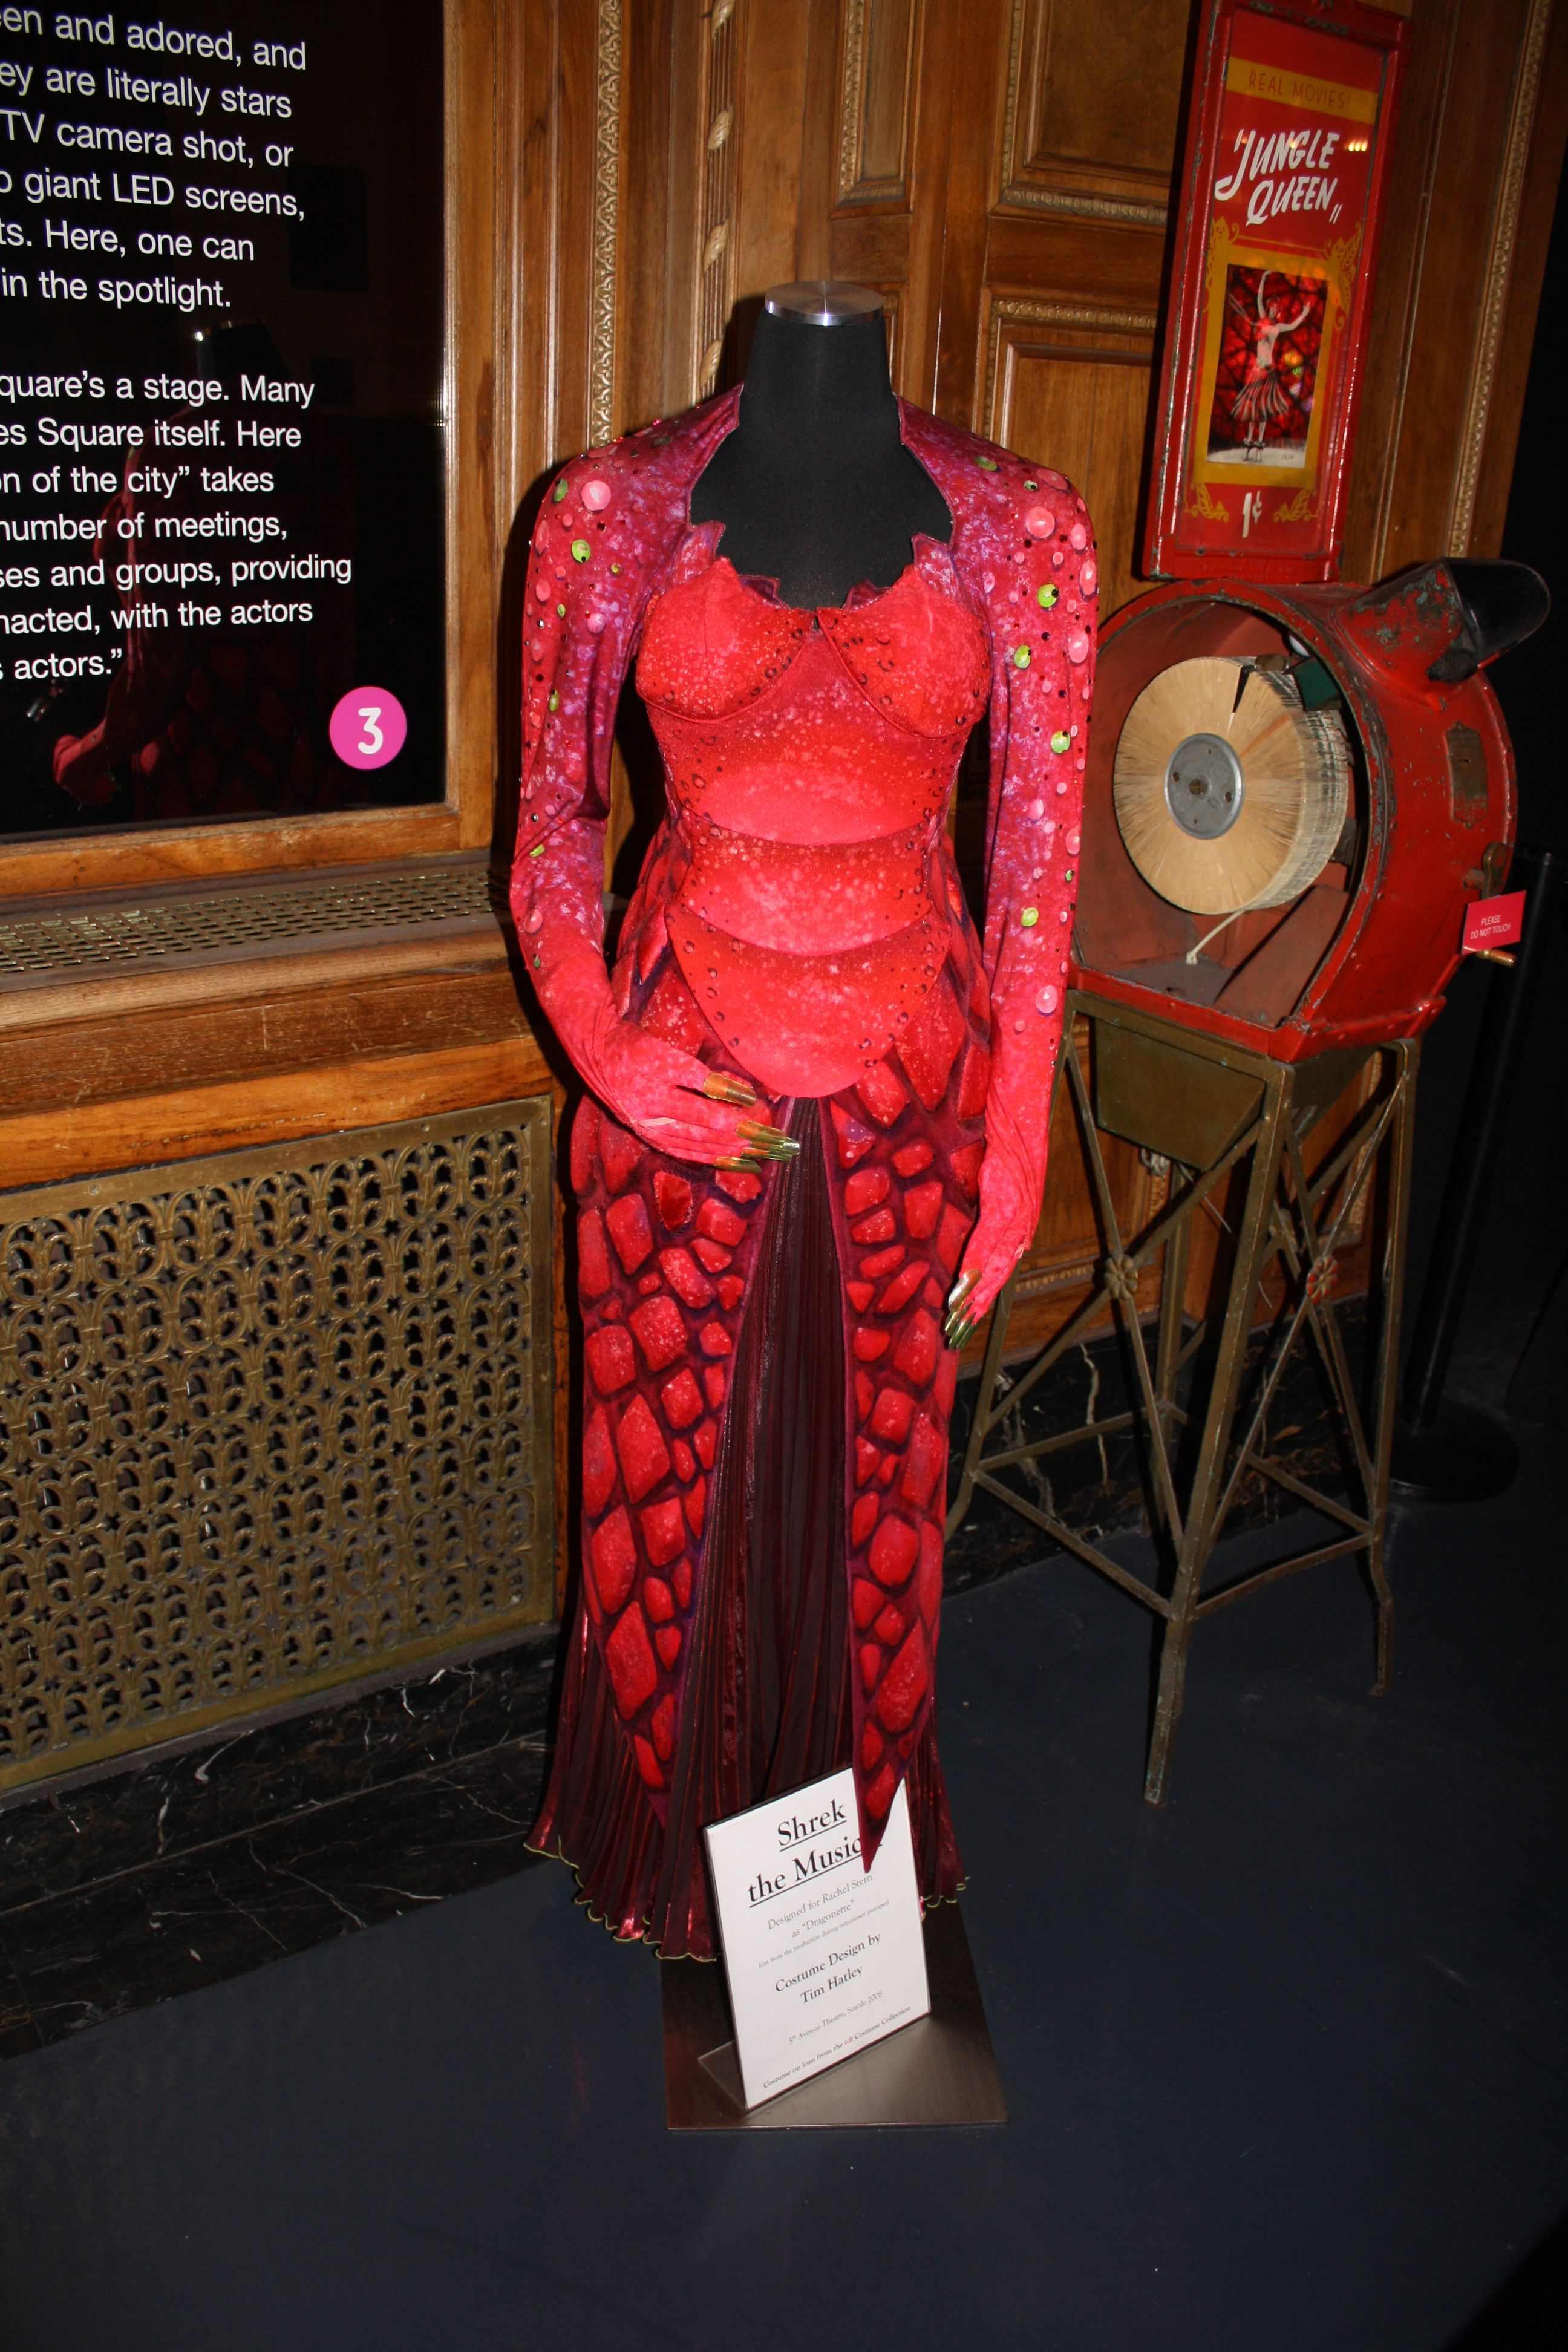 """Dragonette's costume from """"Shrek the Musical."""" Designed by Tim Hatley for Rachel Stern. This costume was cut from the production during out-of-town previews. Photo Credit: TDF Costume Collection"""